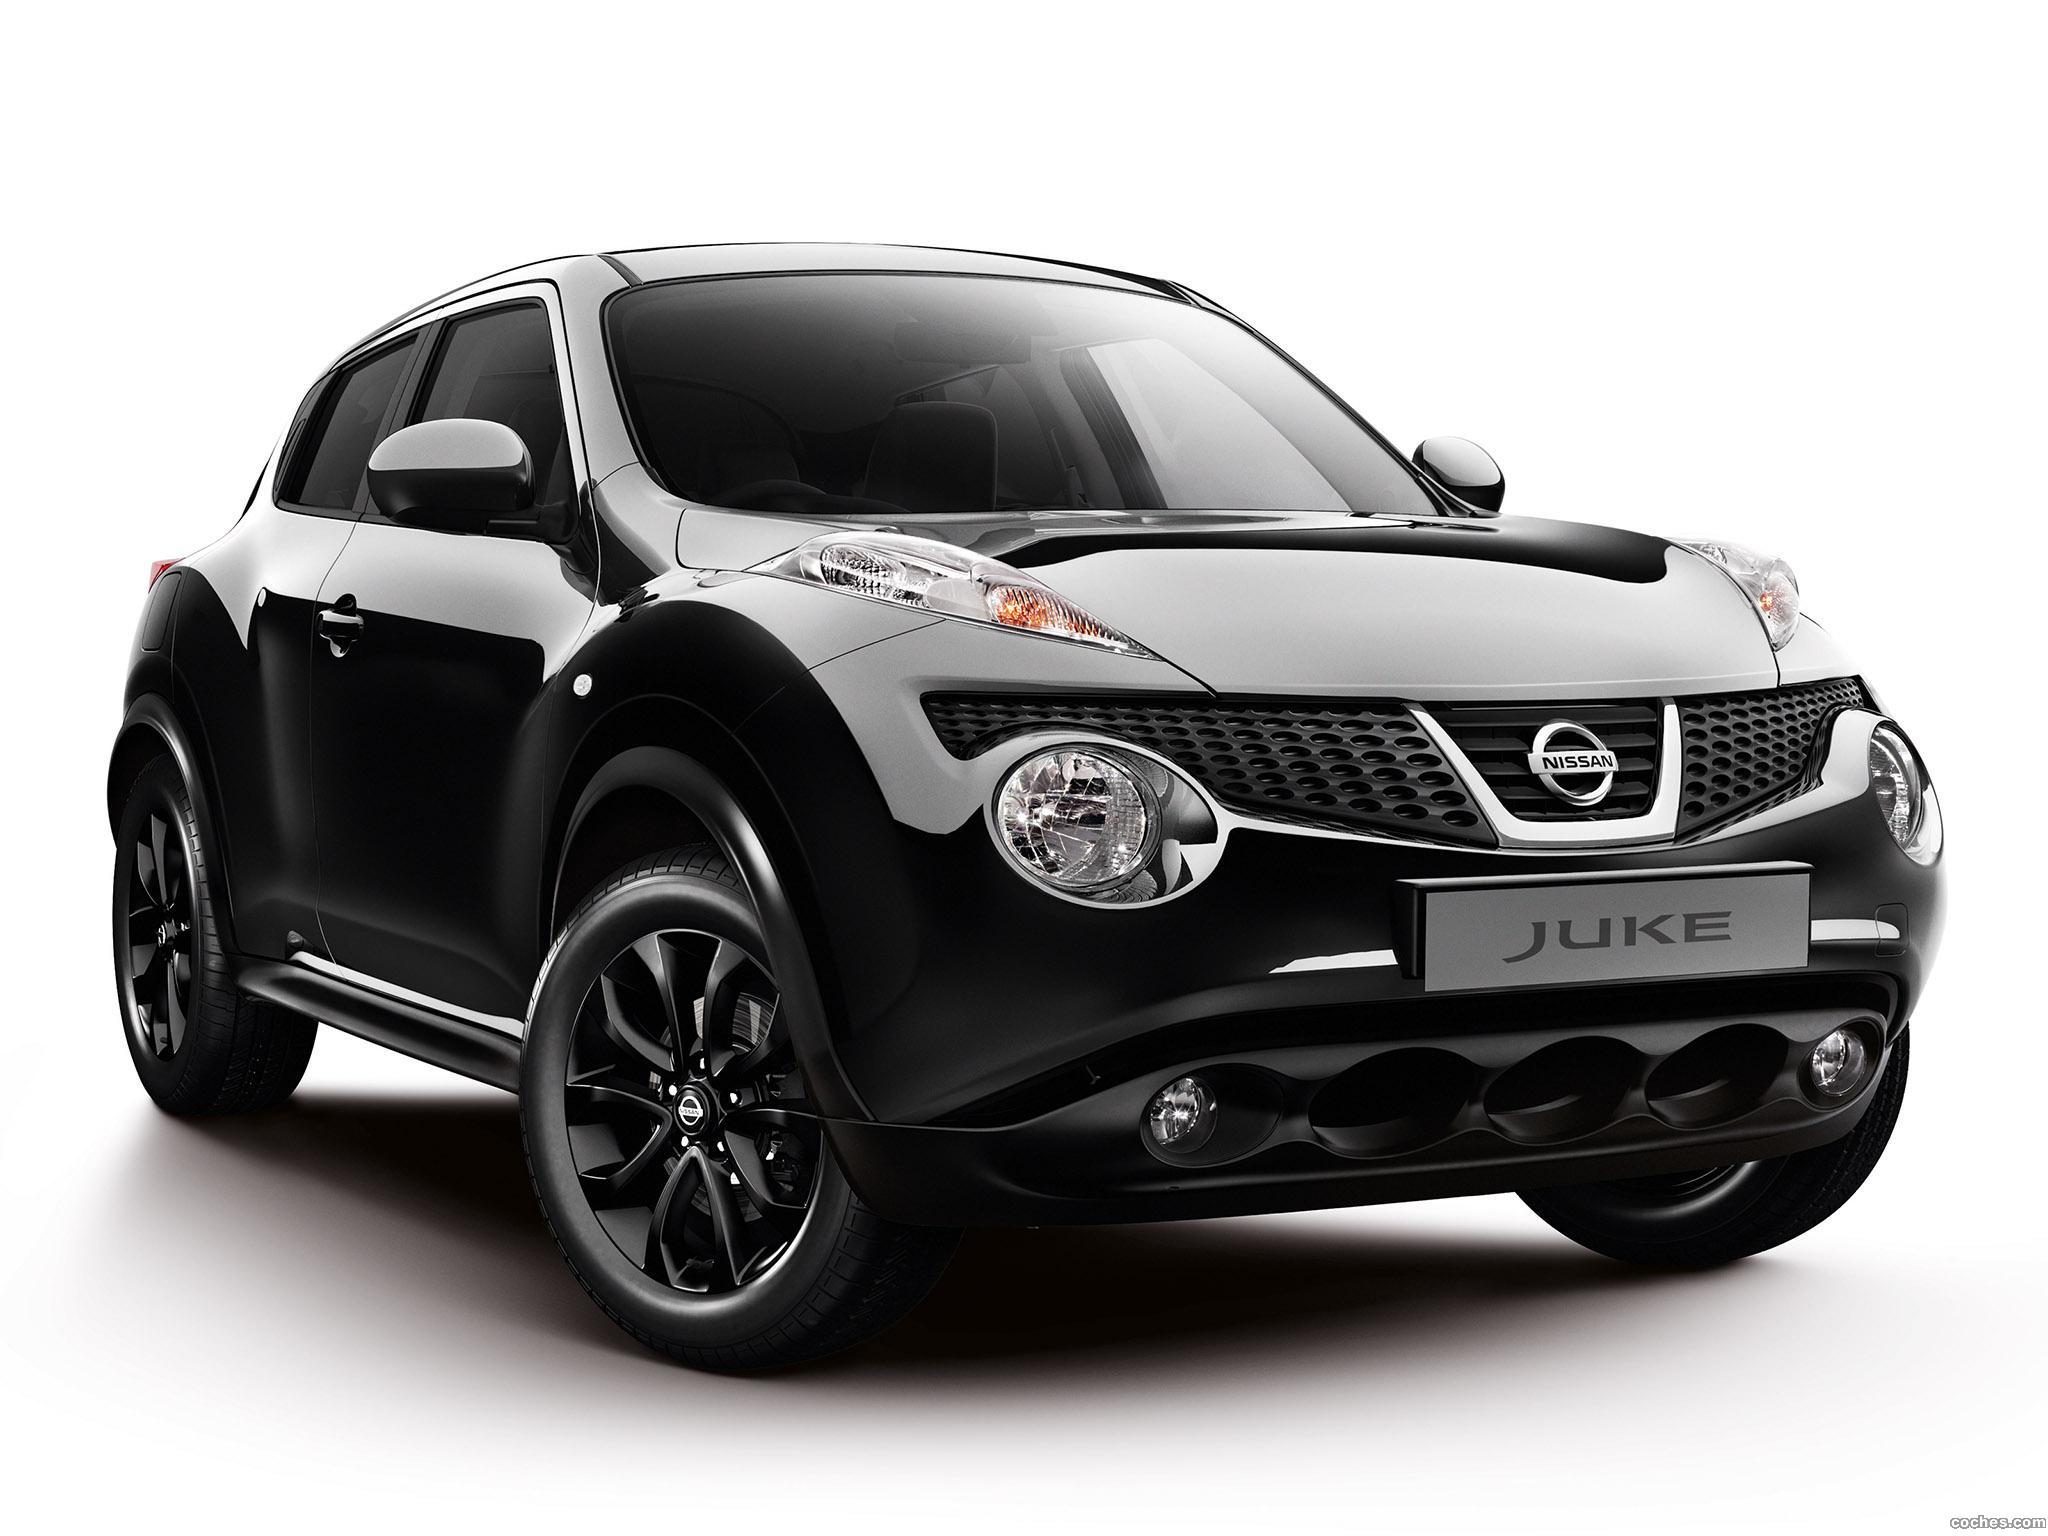 Foto 0 de Nissan Juke Kuro Black Limited Edition 2011